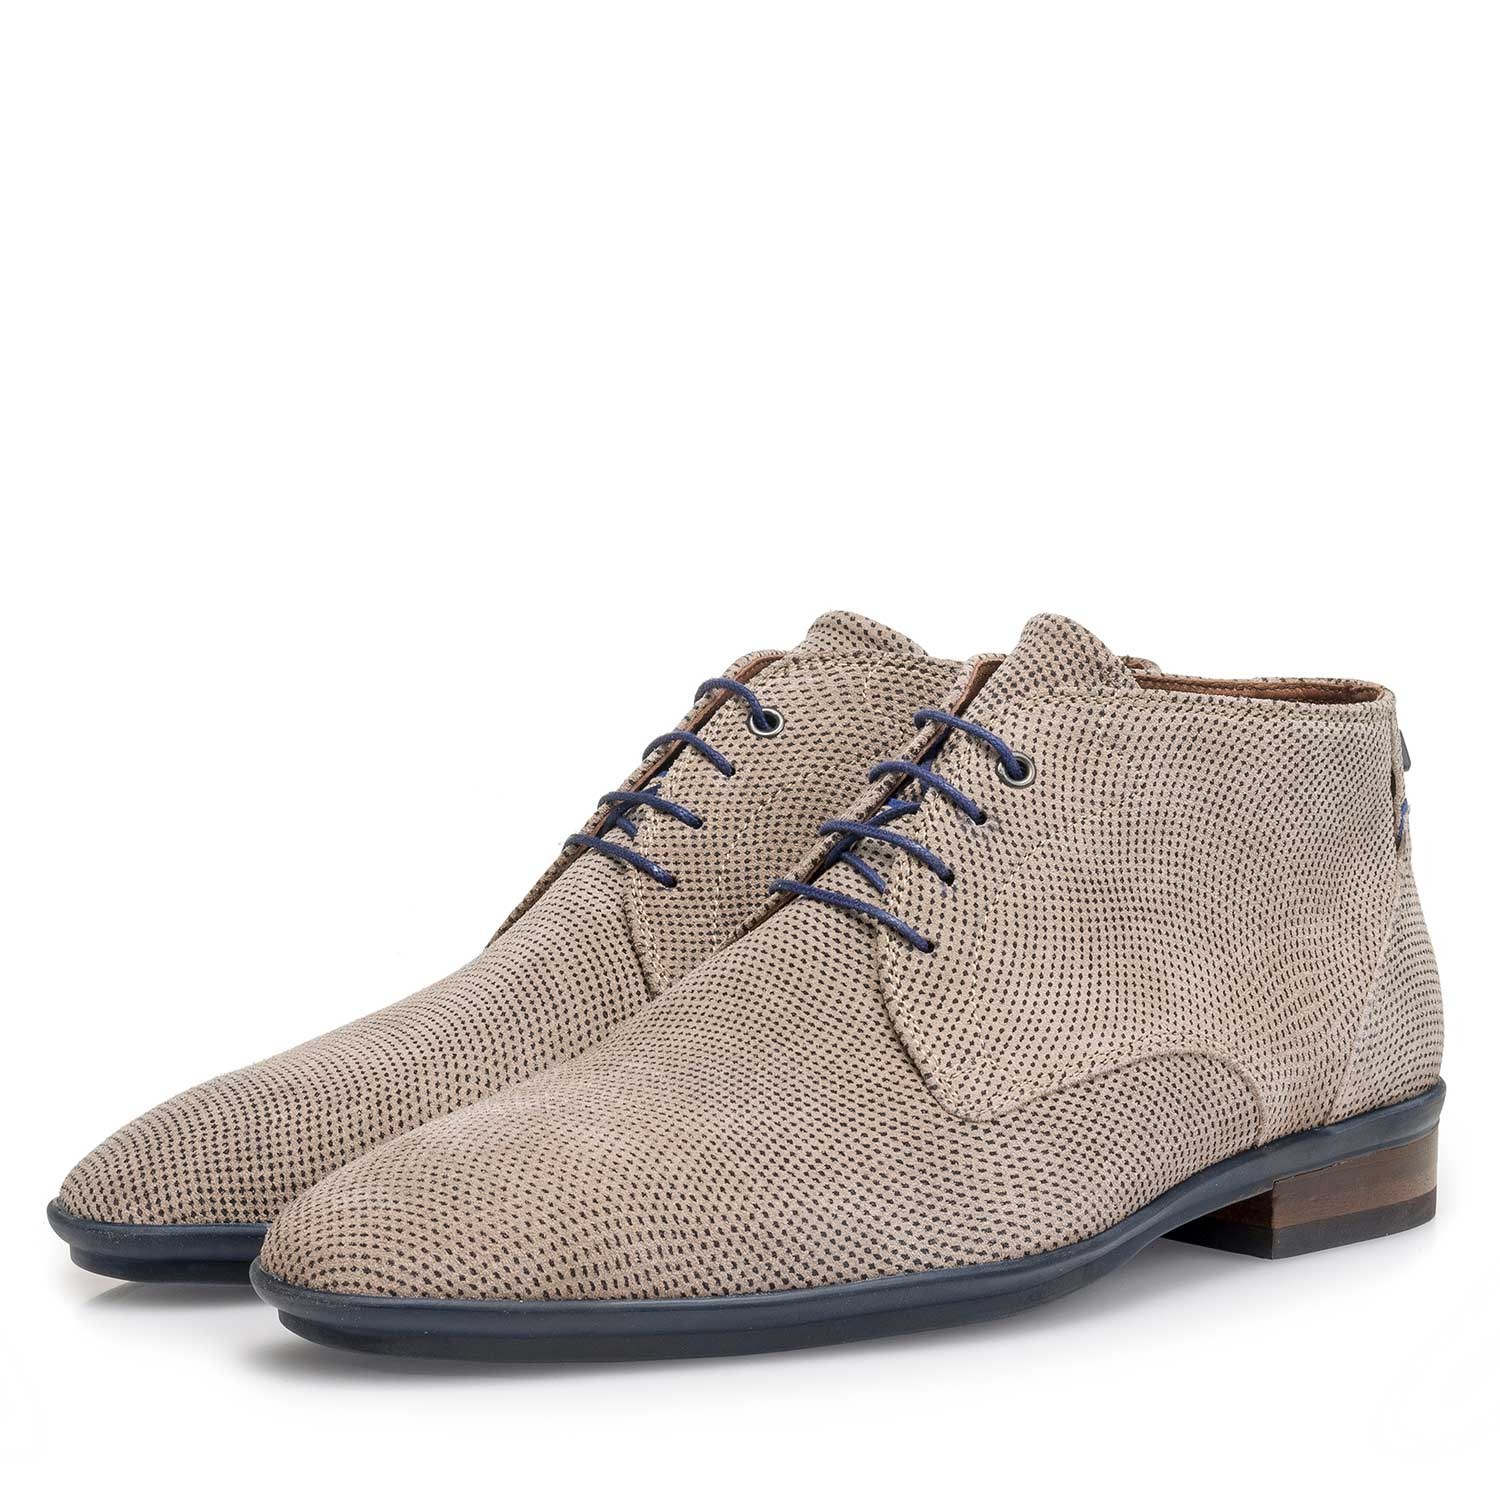 10475/19 - Light taupe-coloured suede leather lace shoe with a pattern